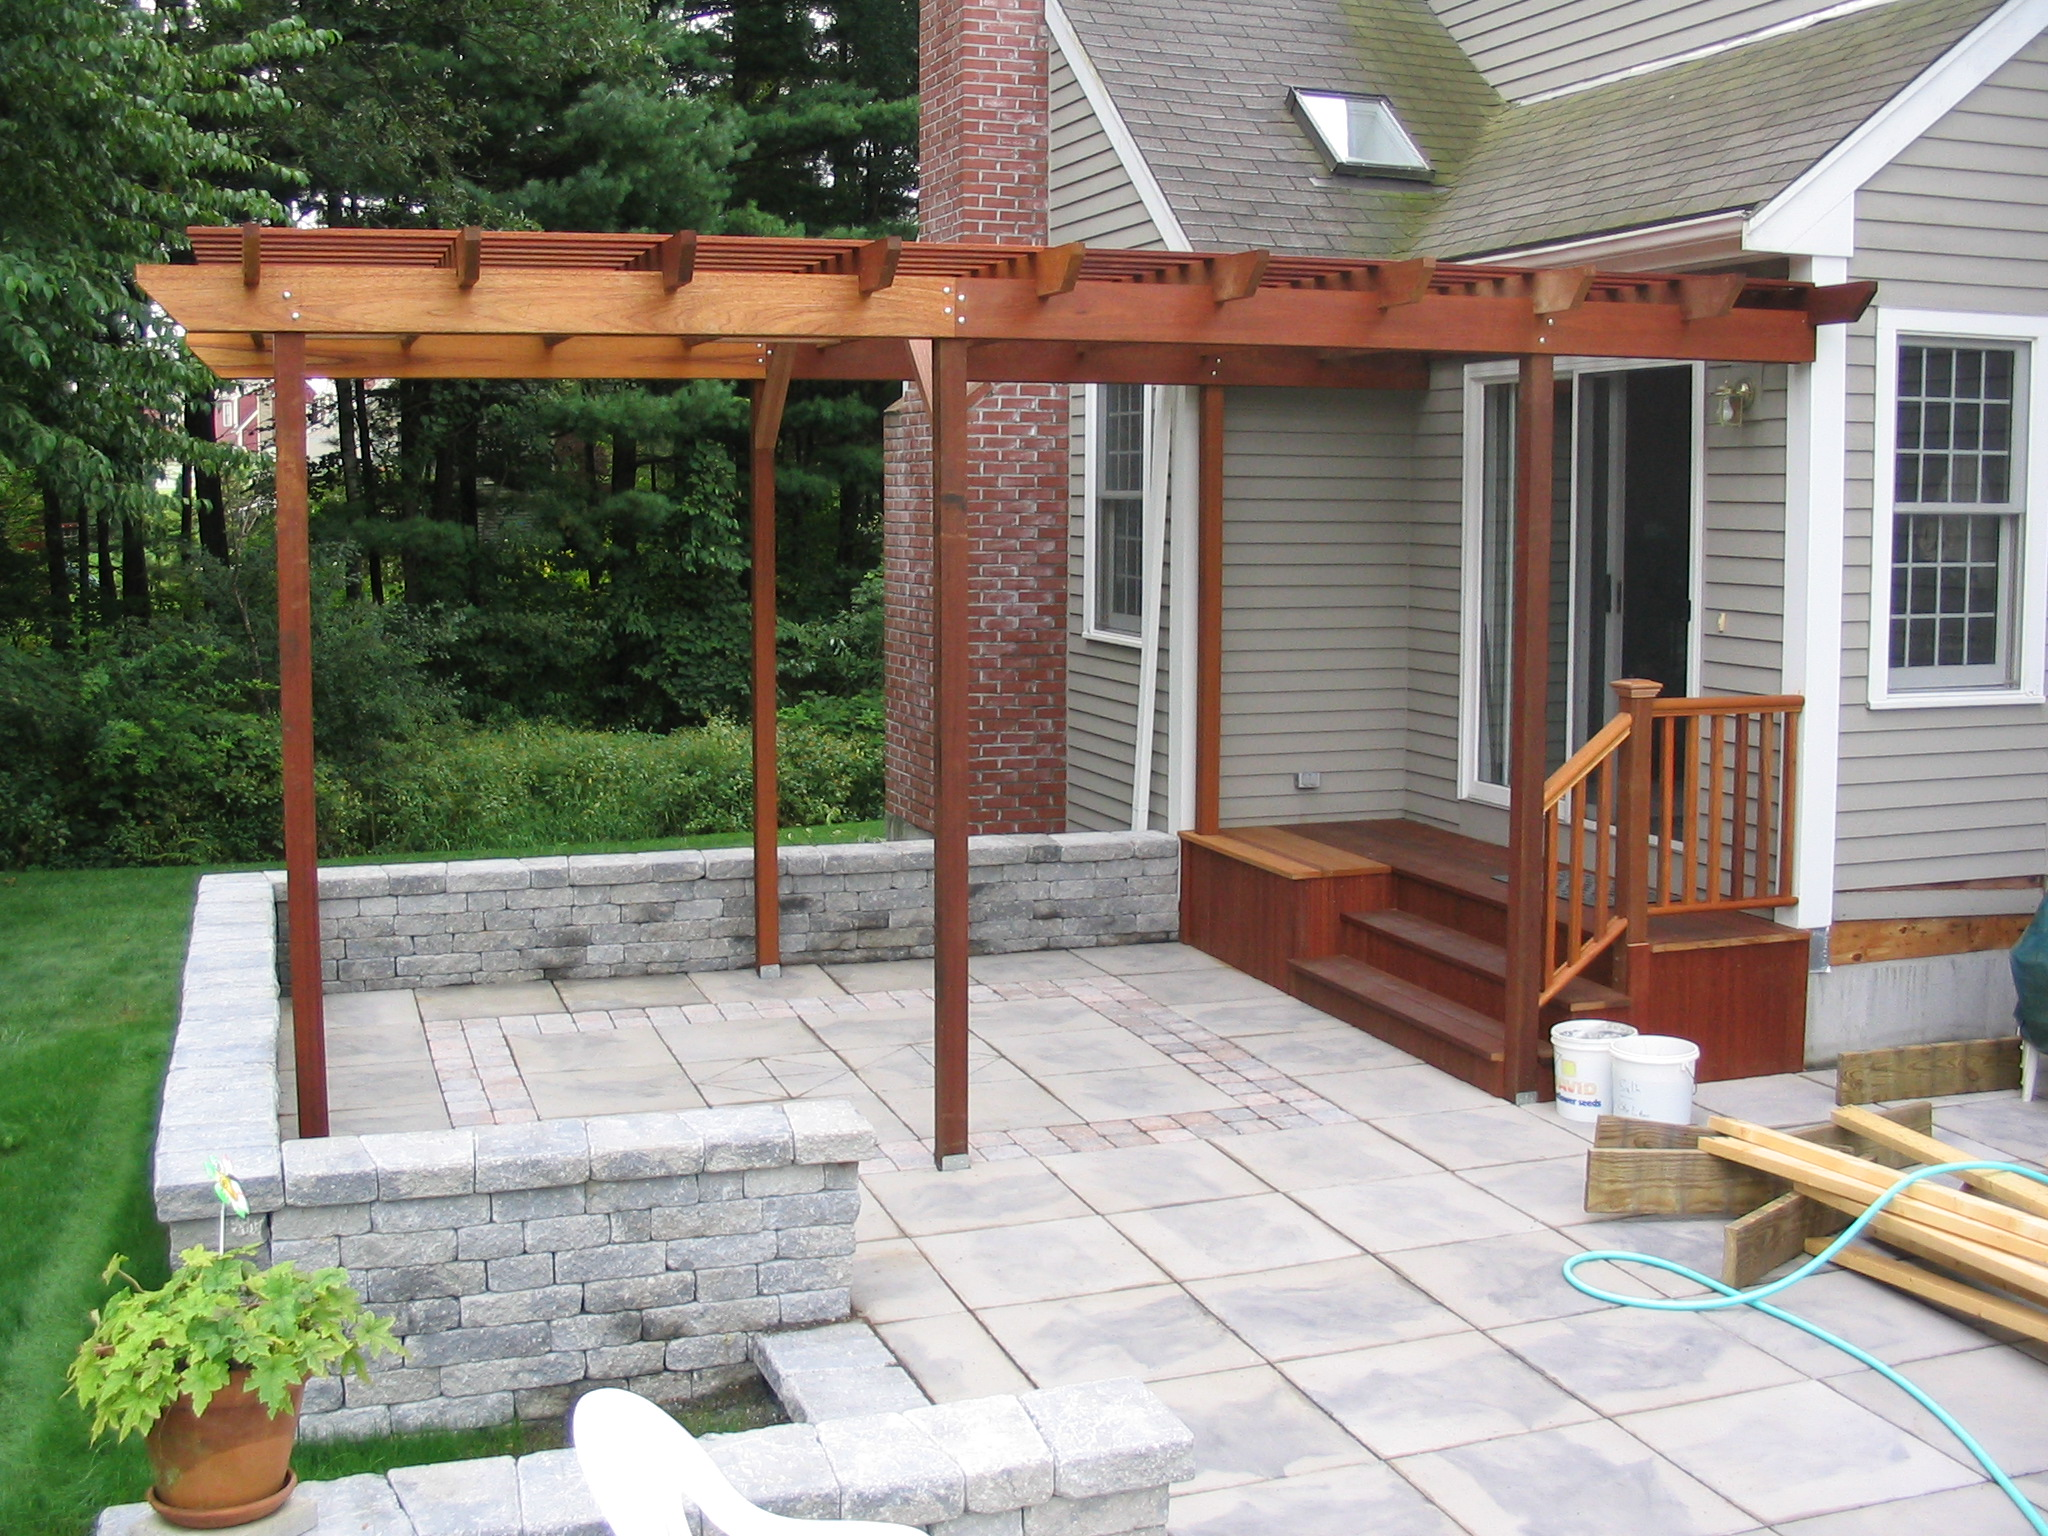 Charming Patio U0026 Pergola   I Designed The Pergola And Steps Leading To The Sliding  Doors. I Also Assisted In The Actual Building Process Of The Pergola.